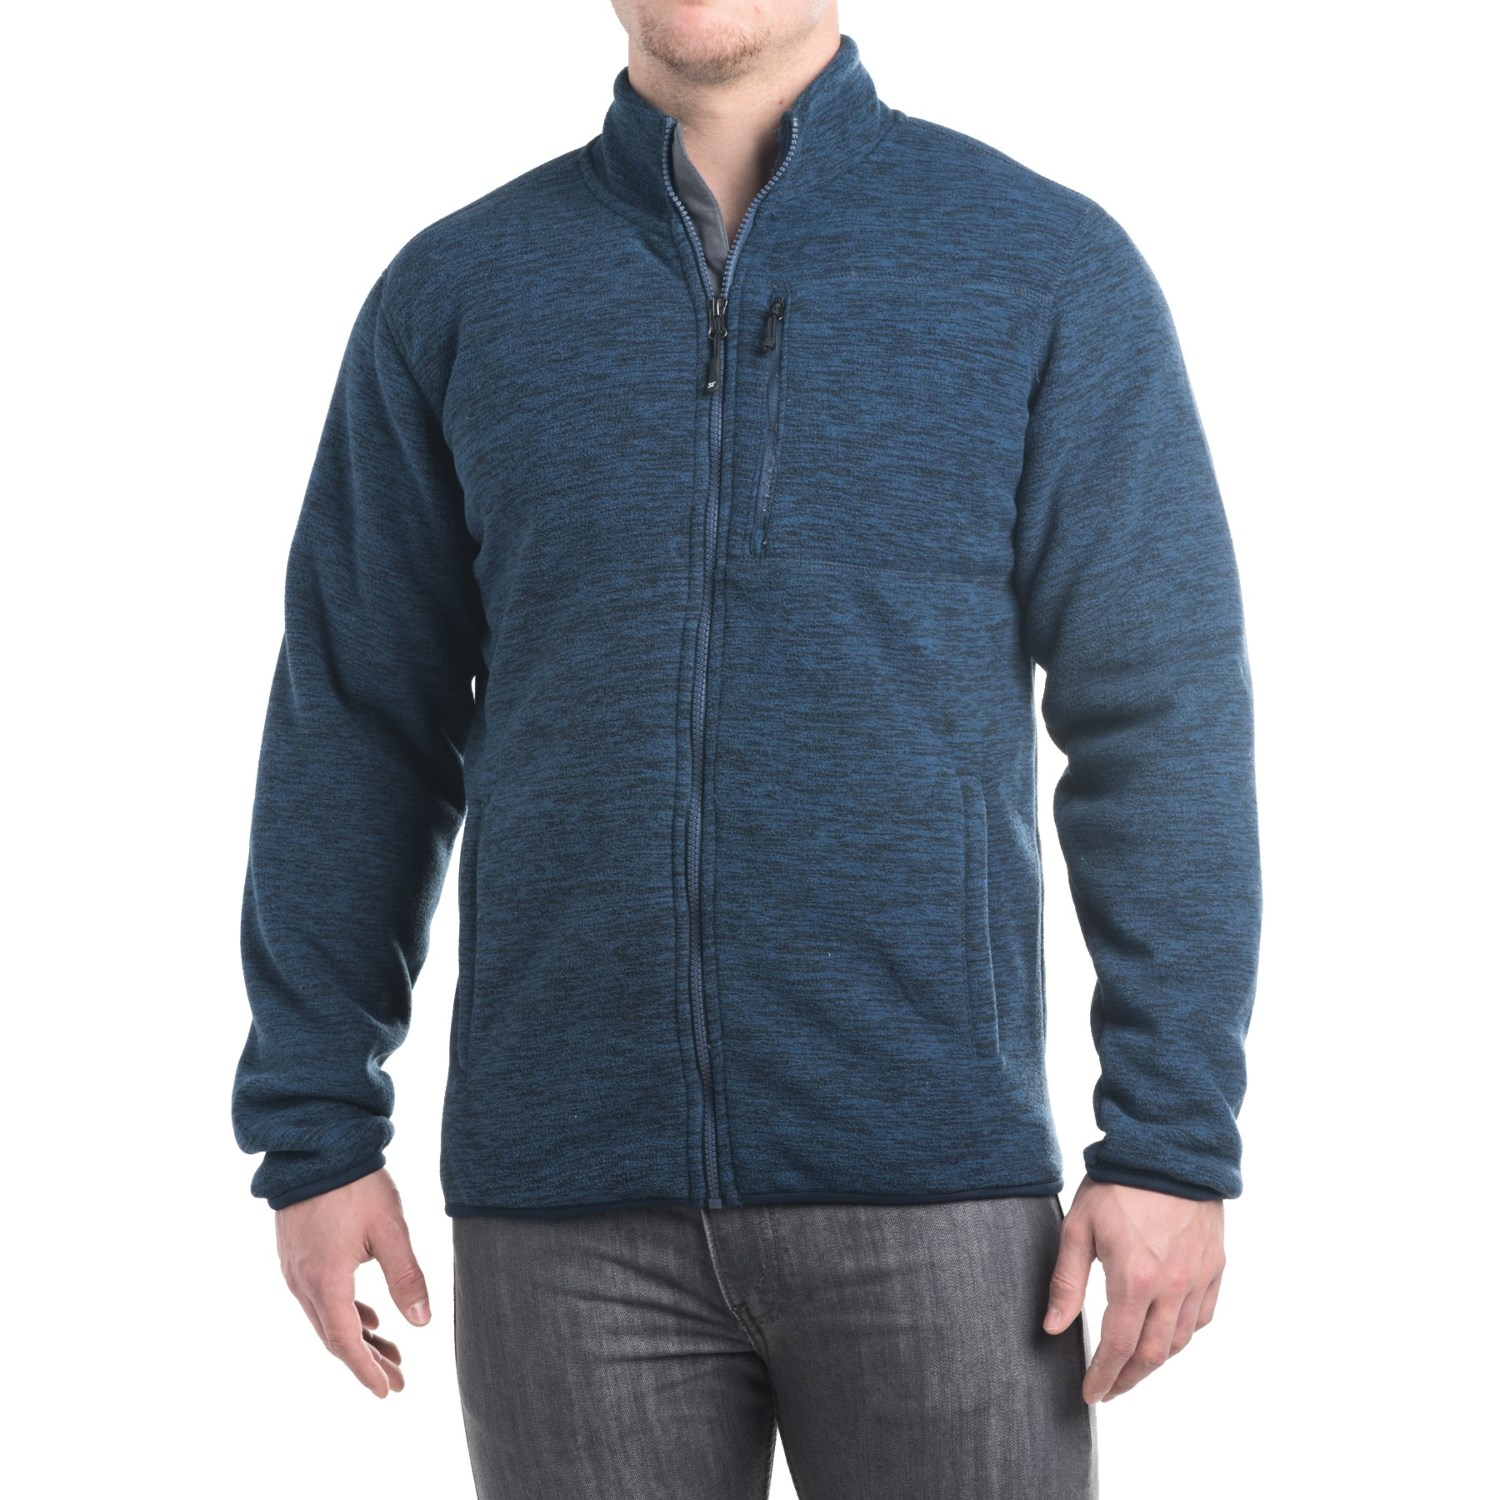 Lined Fleece Jacket Jackets Review